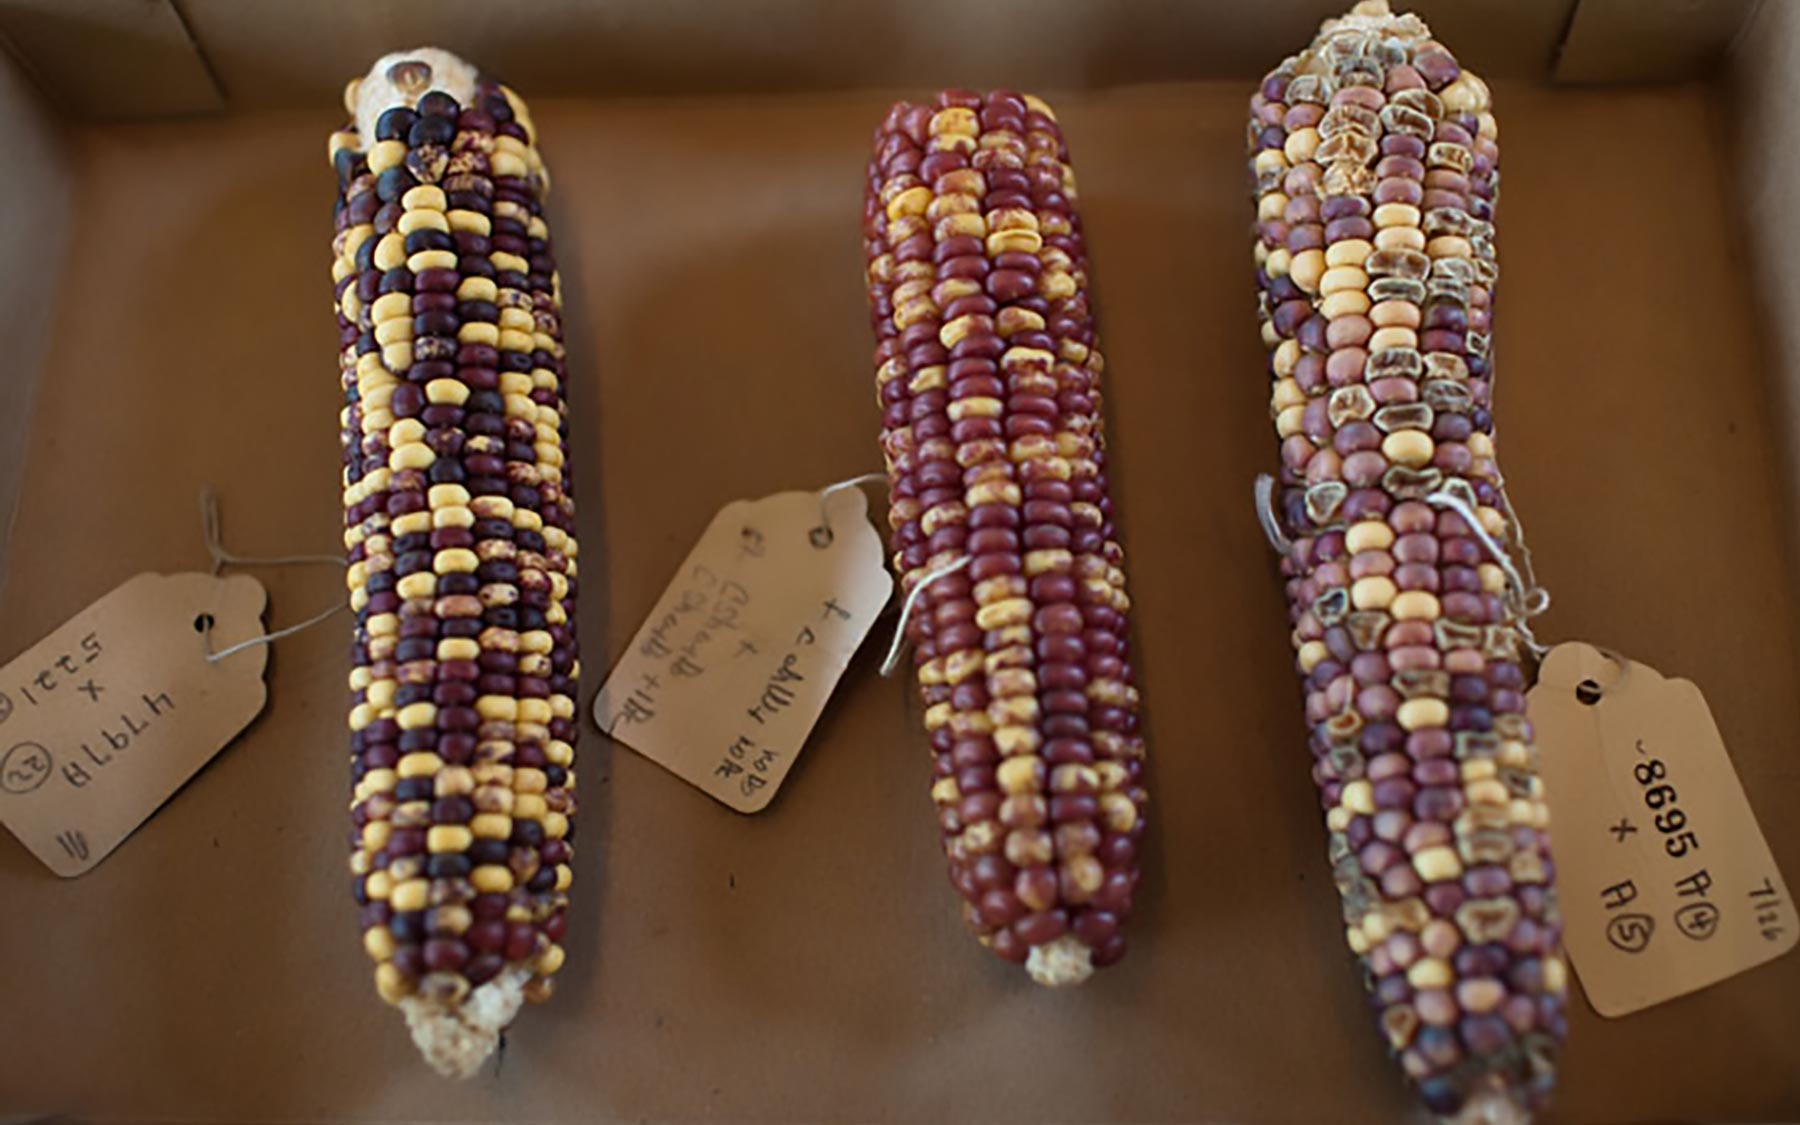 McClintocks transposon corn